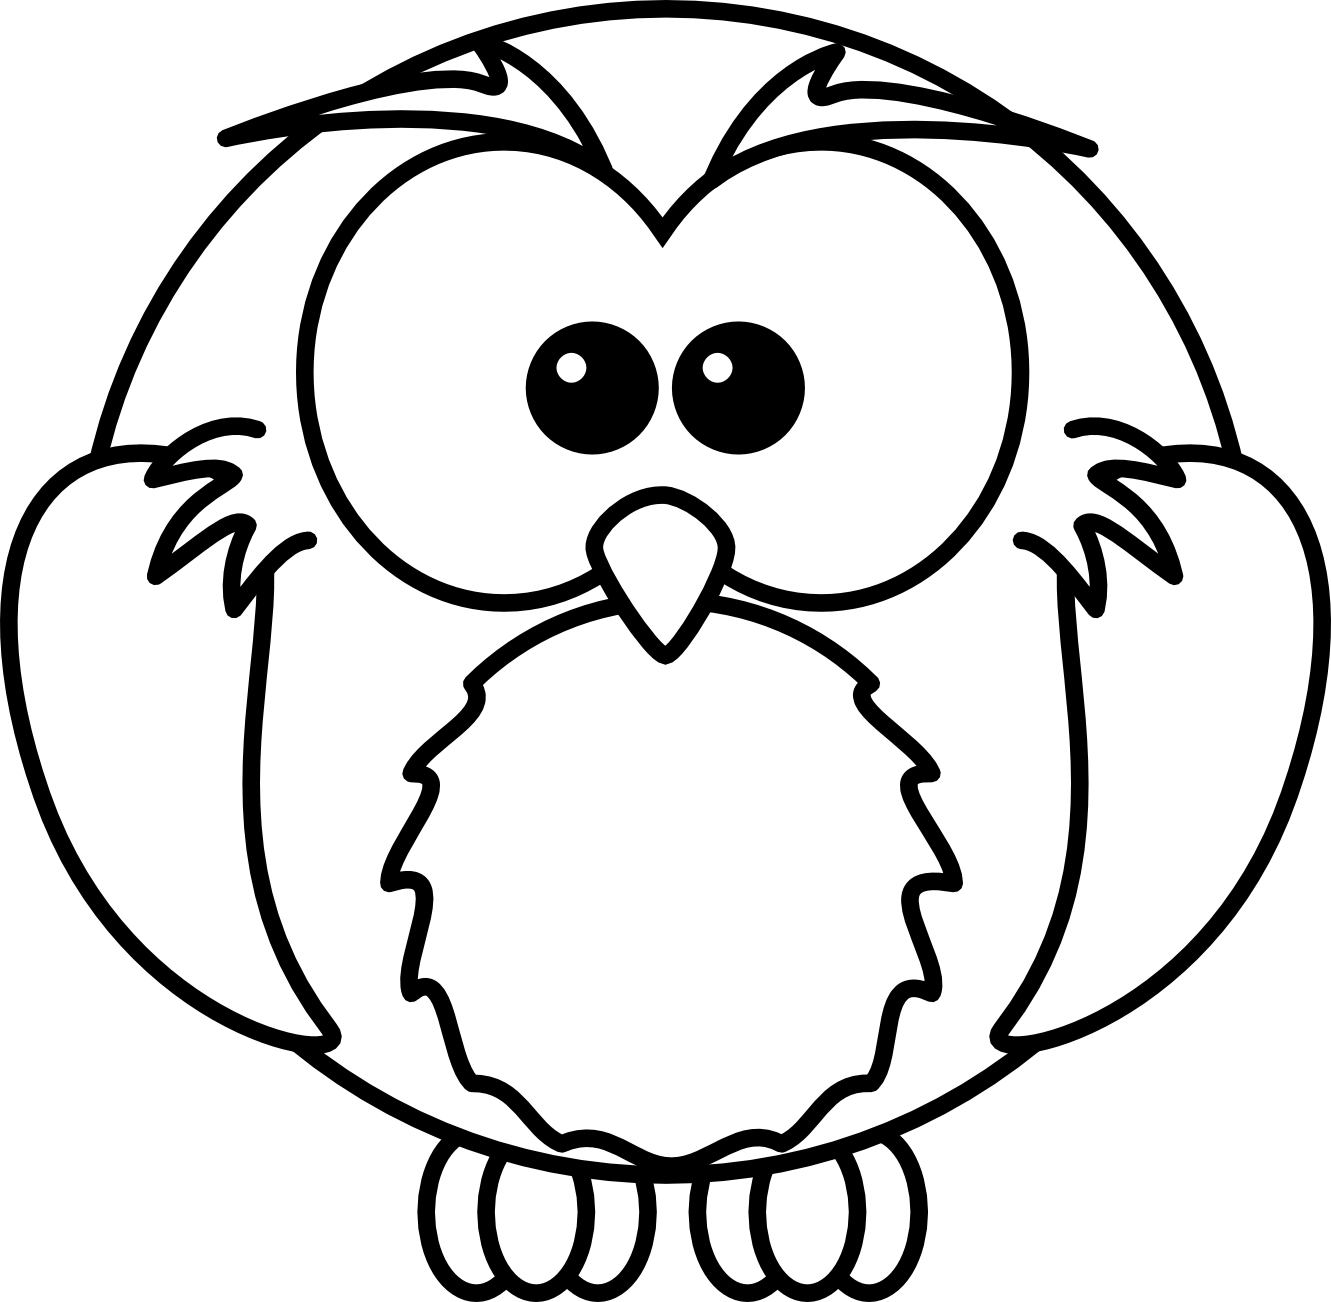 jpg black and white library Baby owl panda free. Black and white animal clipart